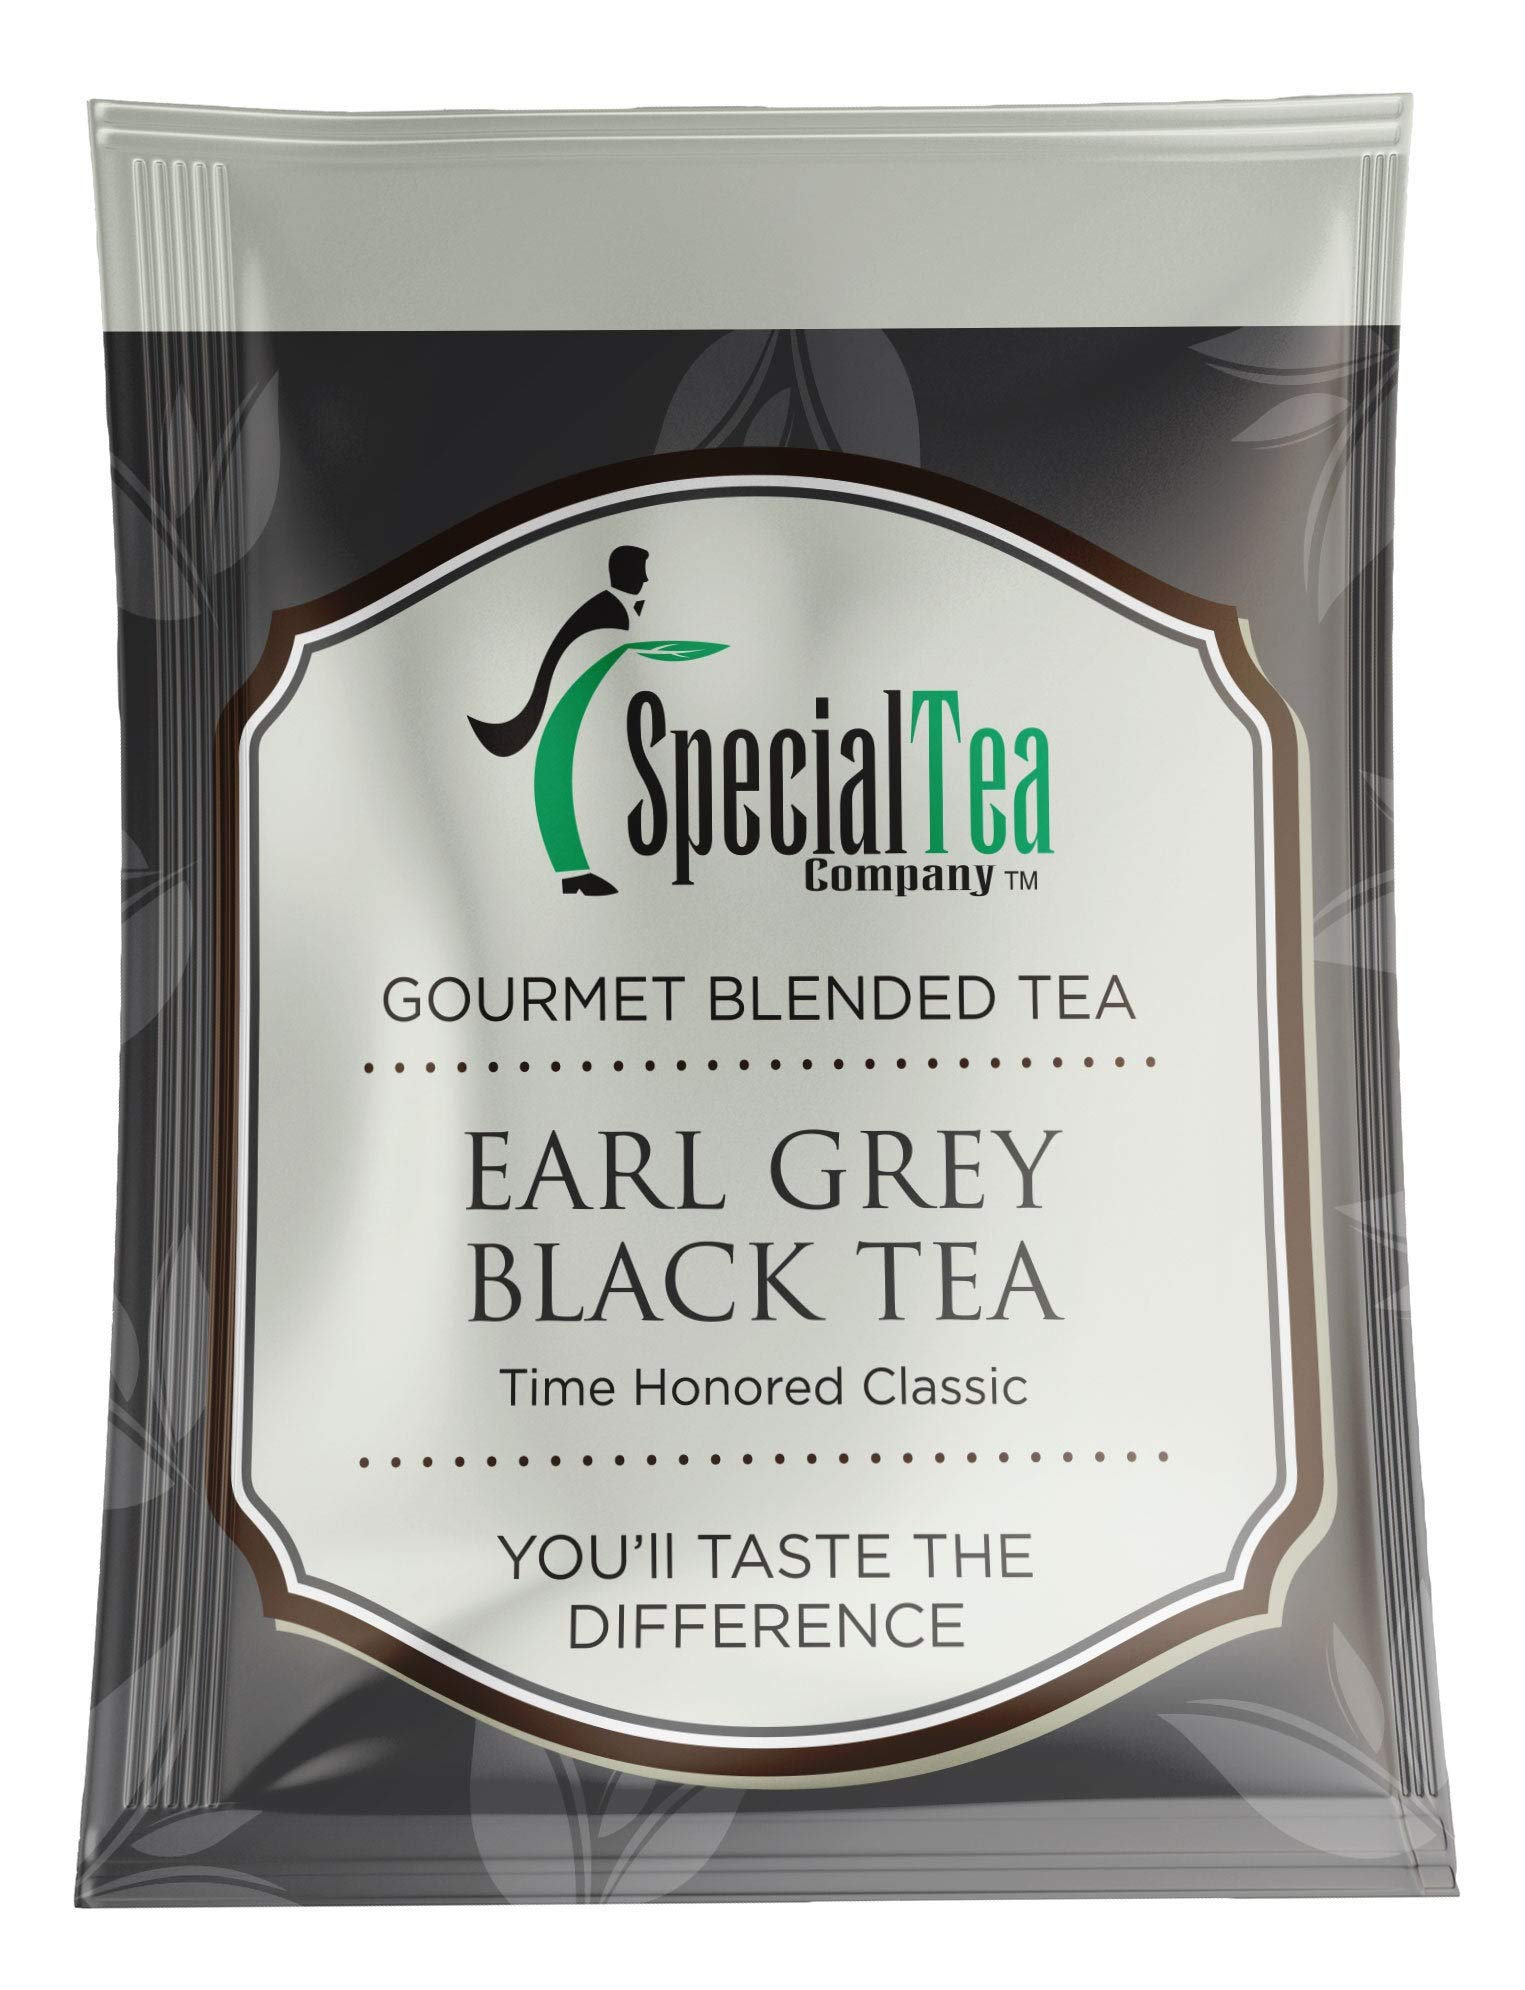 CDM product Special Tea Earl Grey Black Individually Foil Wrapped Tea Bags with String and Tag, 100 Count big image